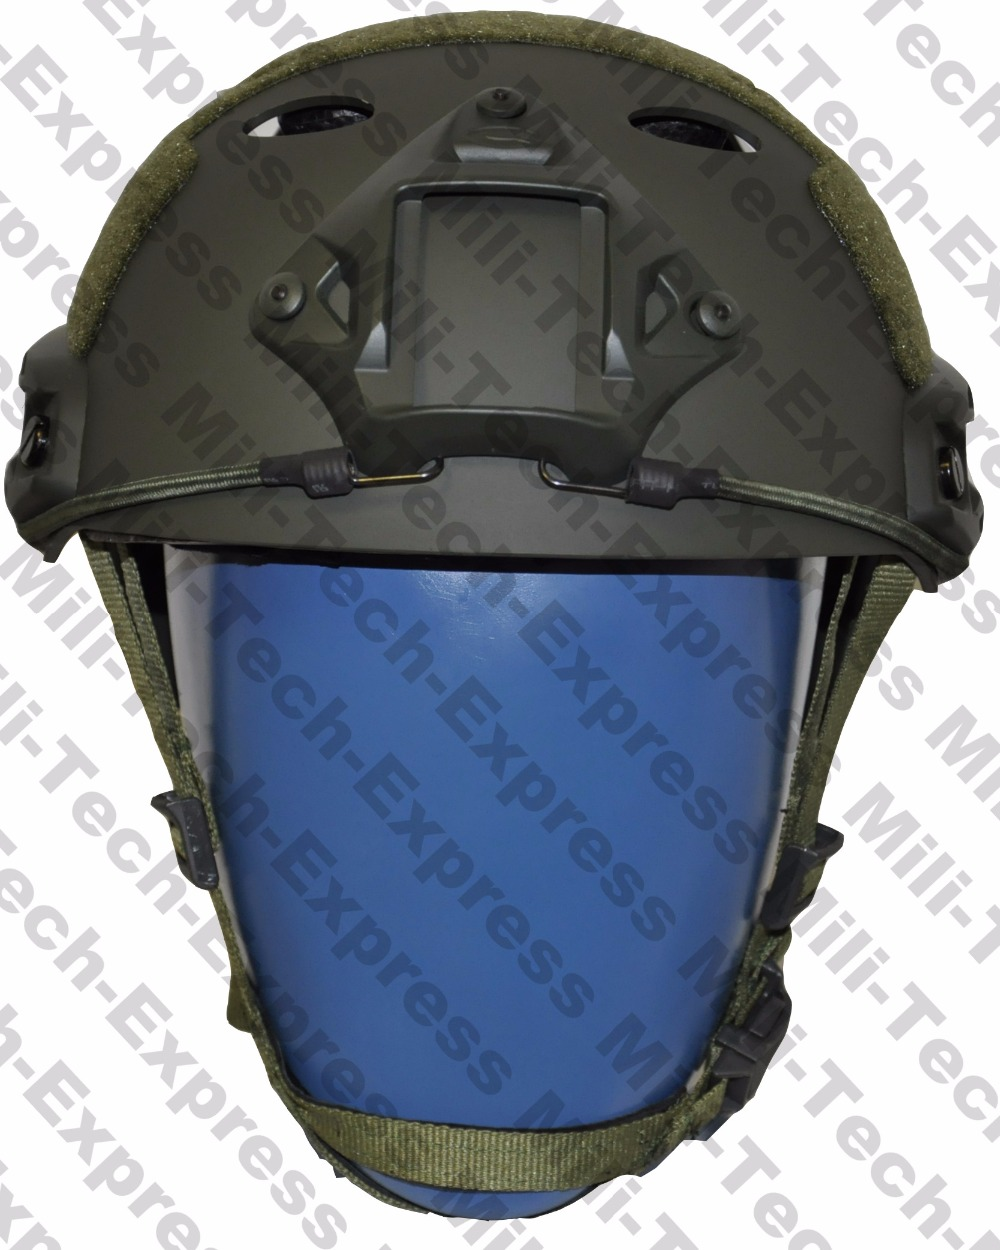 FAST OD PJ Carbon Style Vented Airsoft Tactical Helmet / Ops Core Style High Cut Training Helmet / FAST Ballistic Style Helmet. fast aor1 pj carbon style vented airsoft tactical helmet ops core style high cut training helmet fast ballistic style helmet